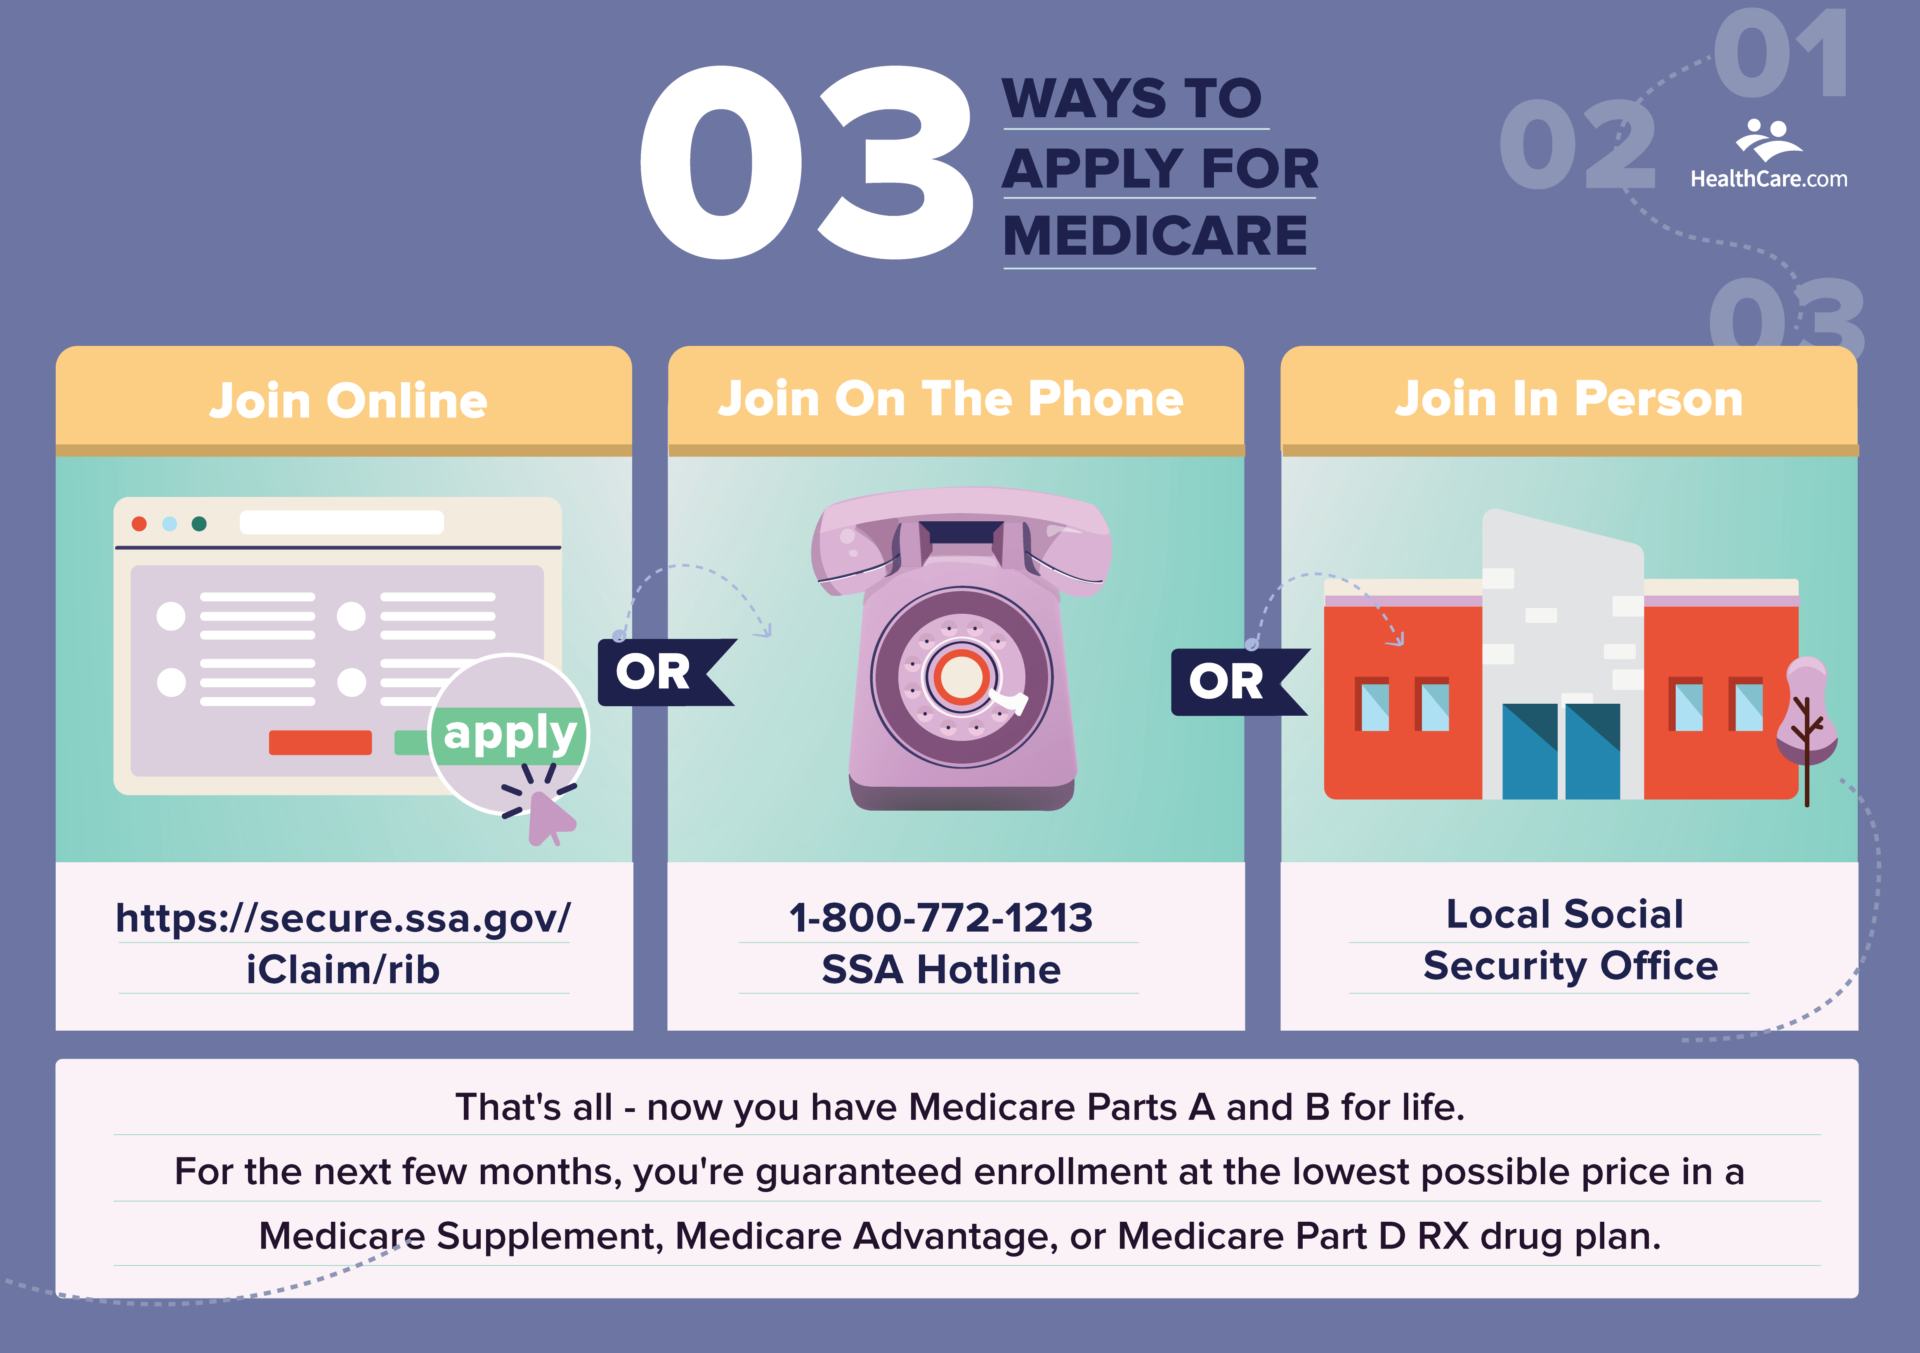 phone email and office ways to apply for Medicare